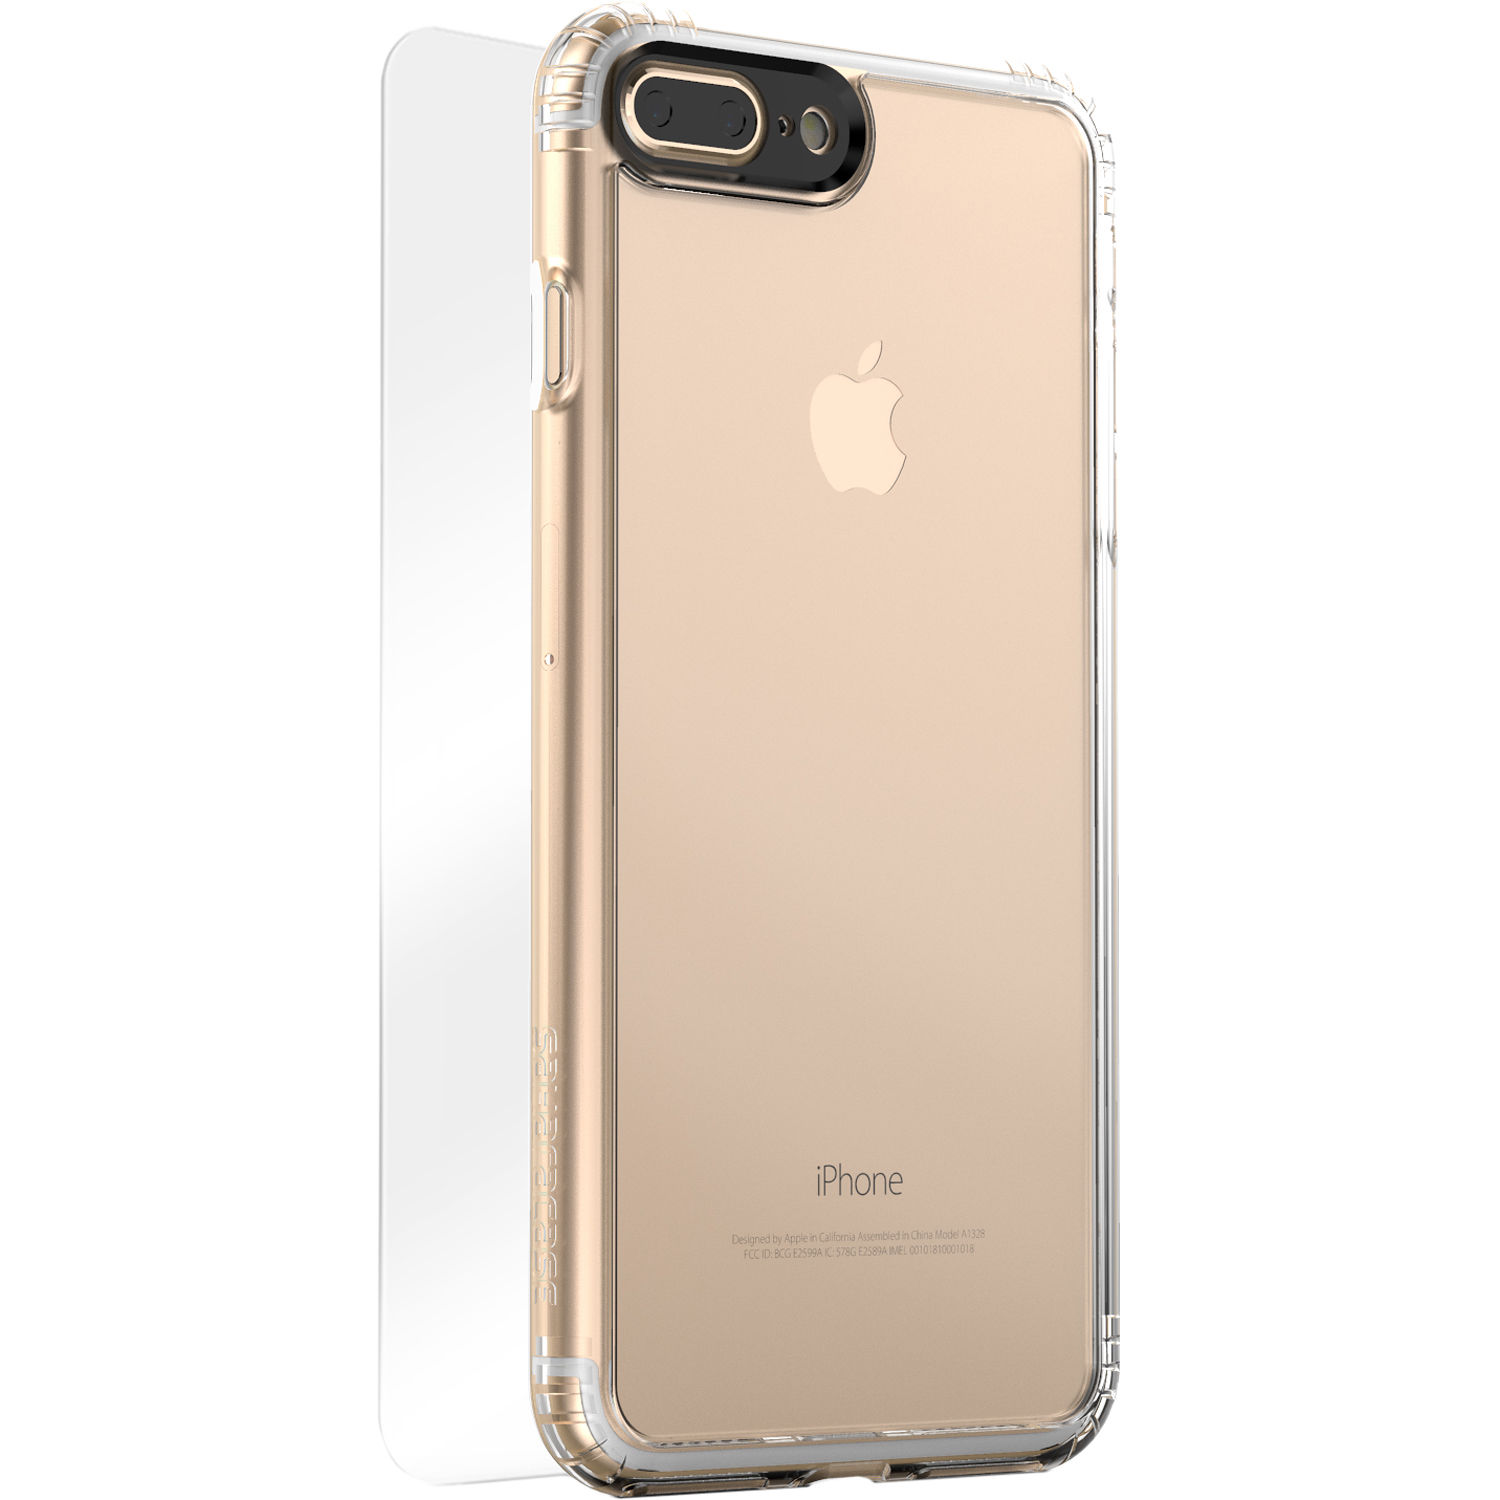 iphone 7 case cler